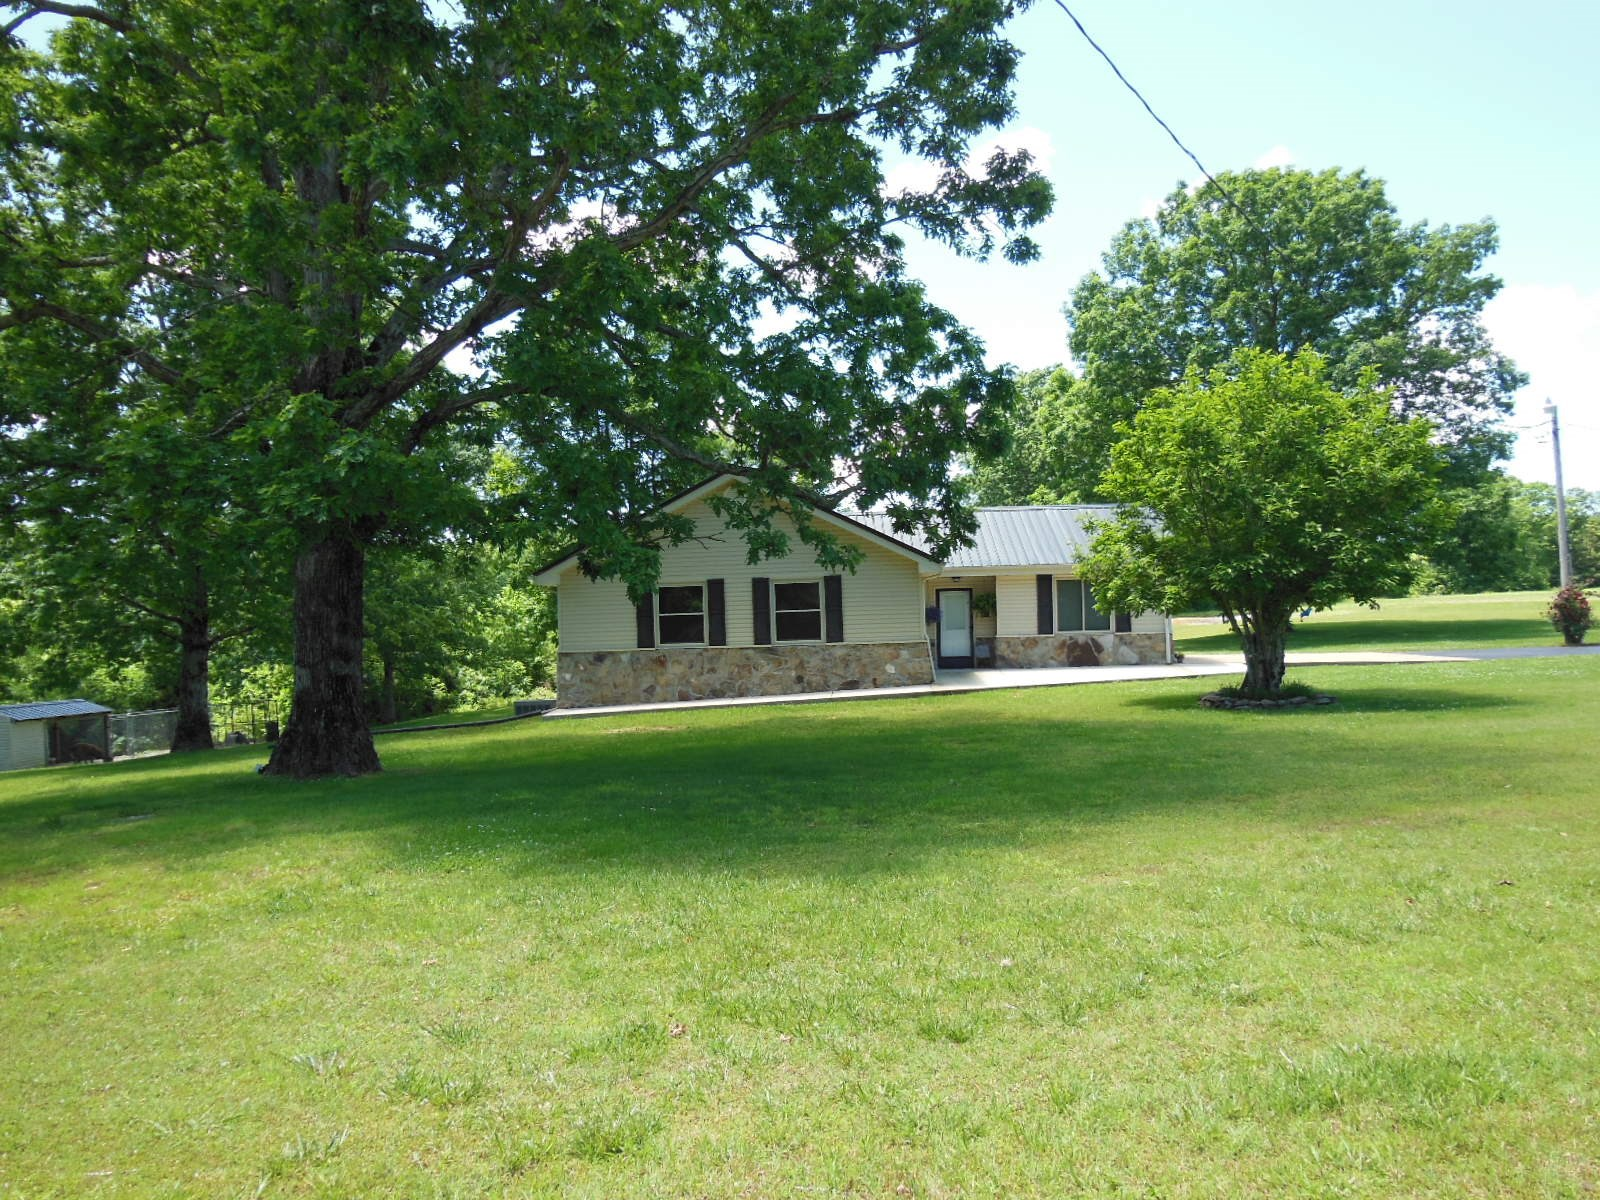 3BR HOME FOR SALE NEAR BUFFALO RIVER WITH SHOP, POOL